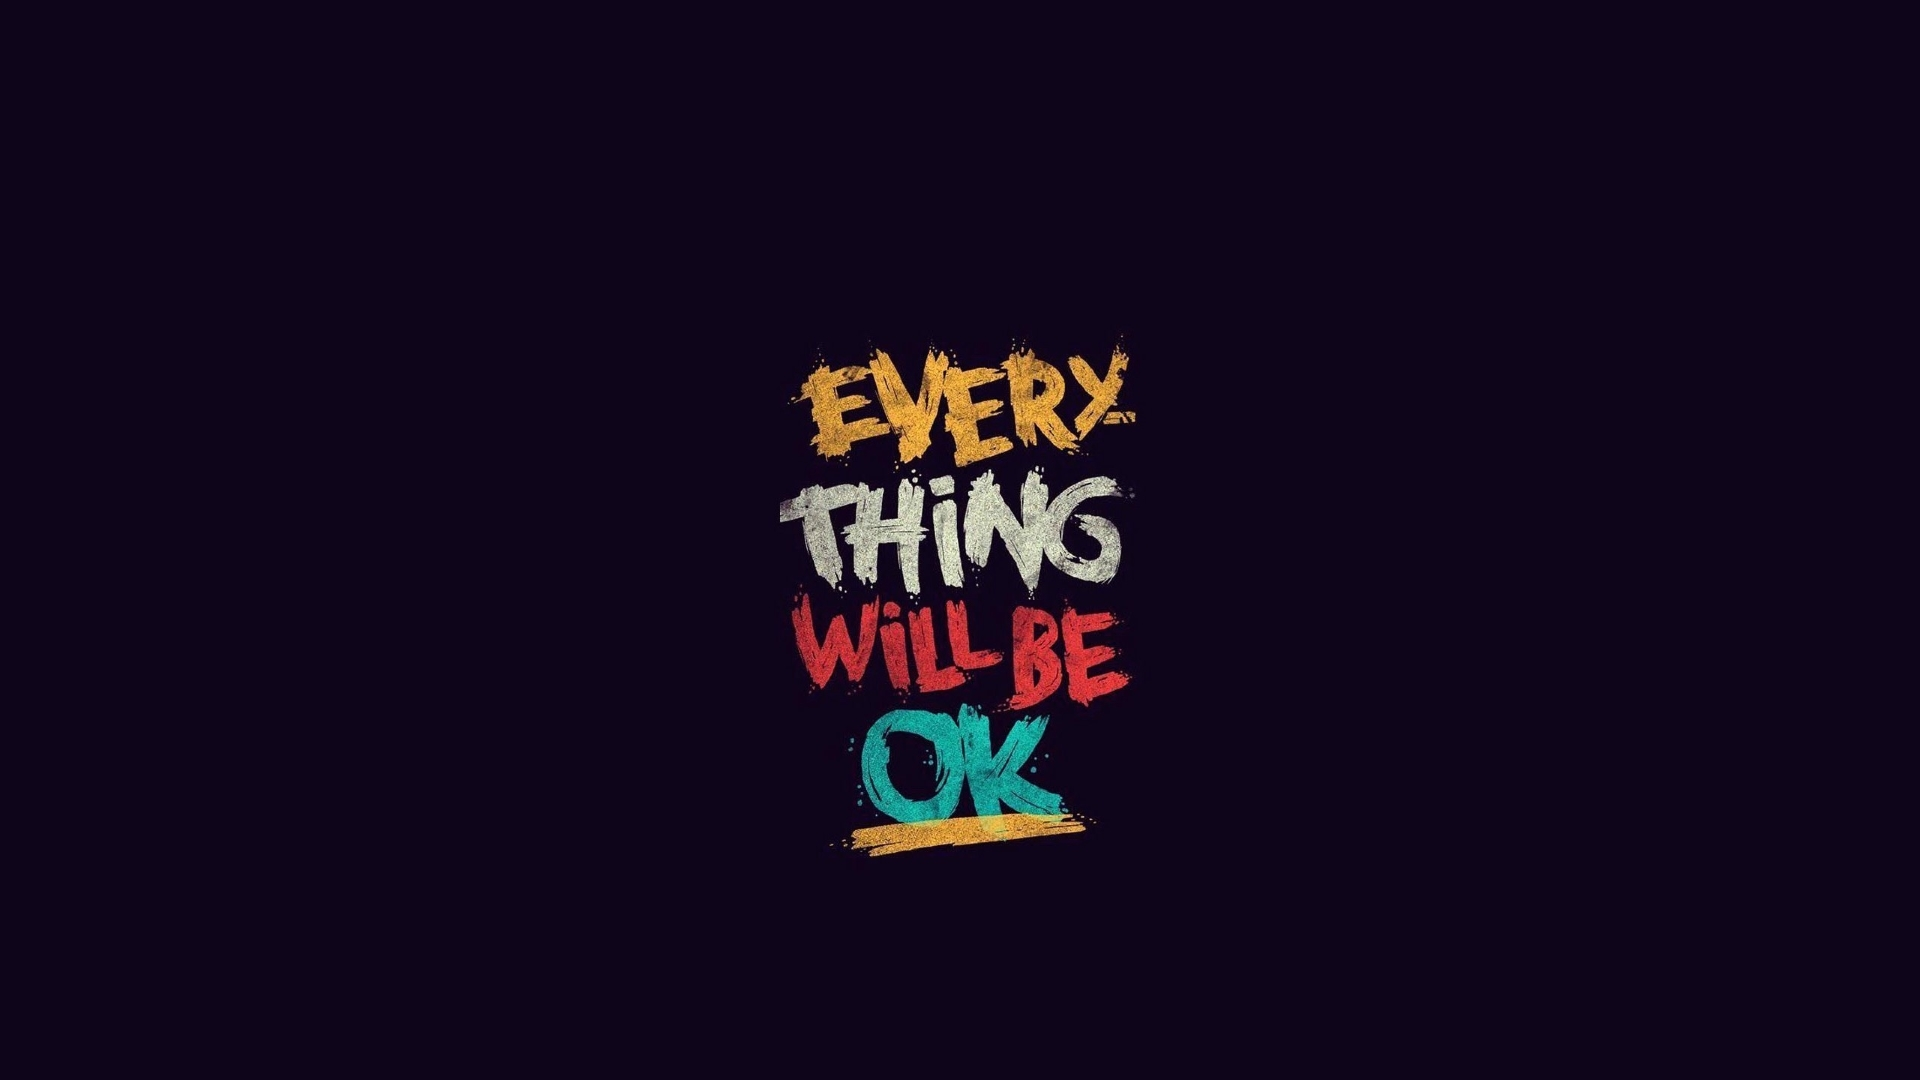 Full Hd Wallpaper For Laptop Quotes